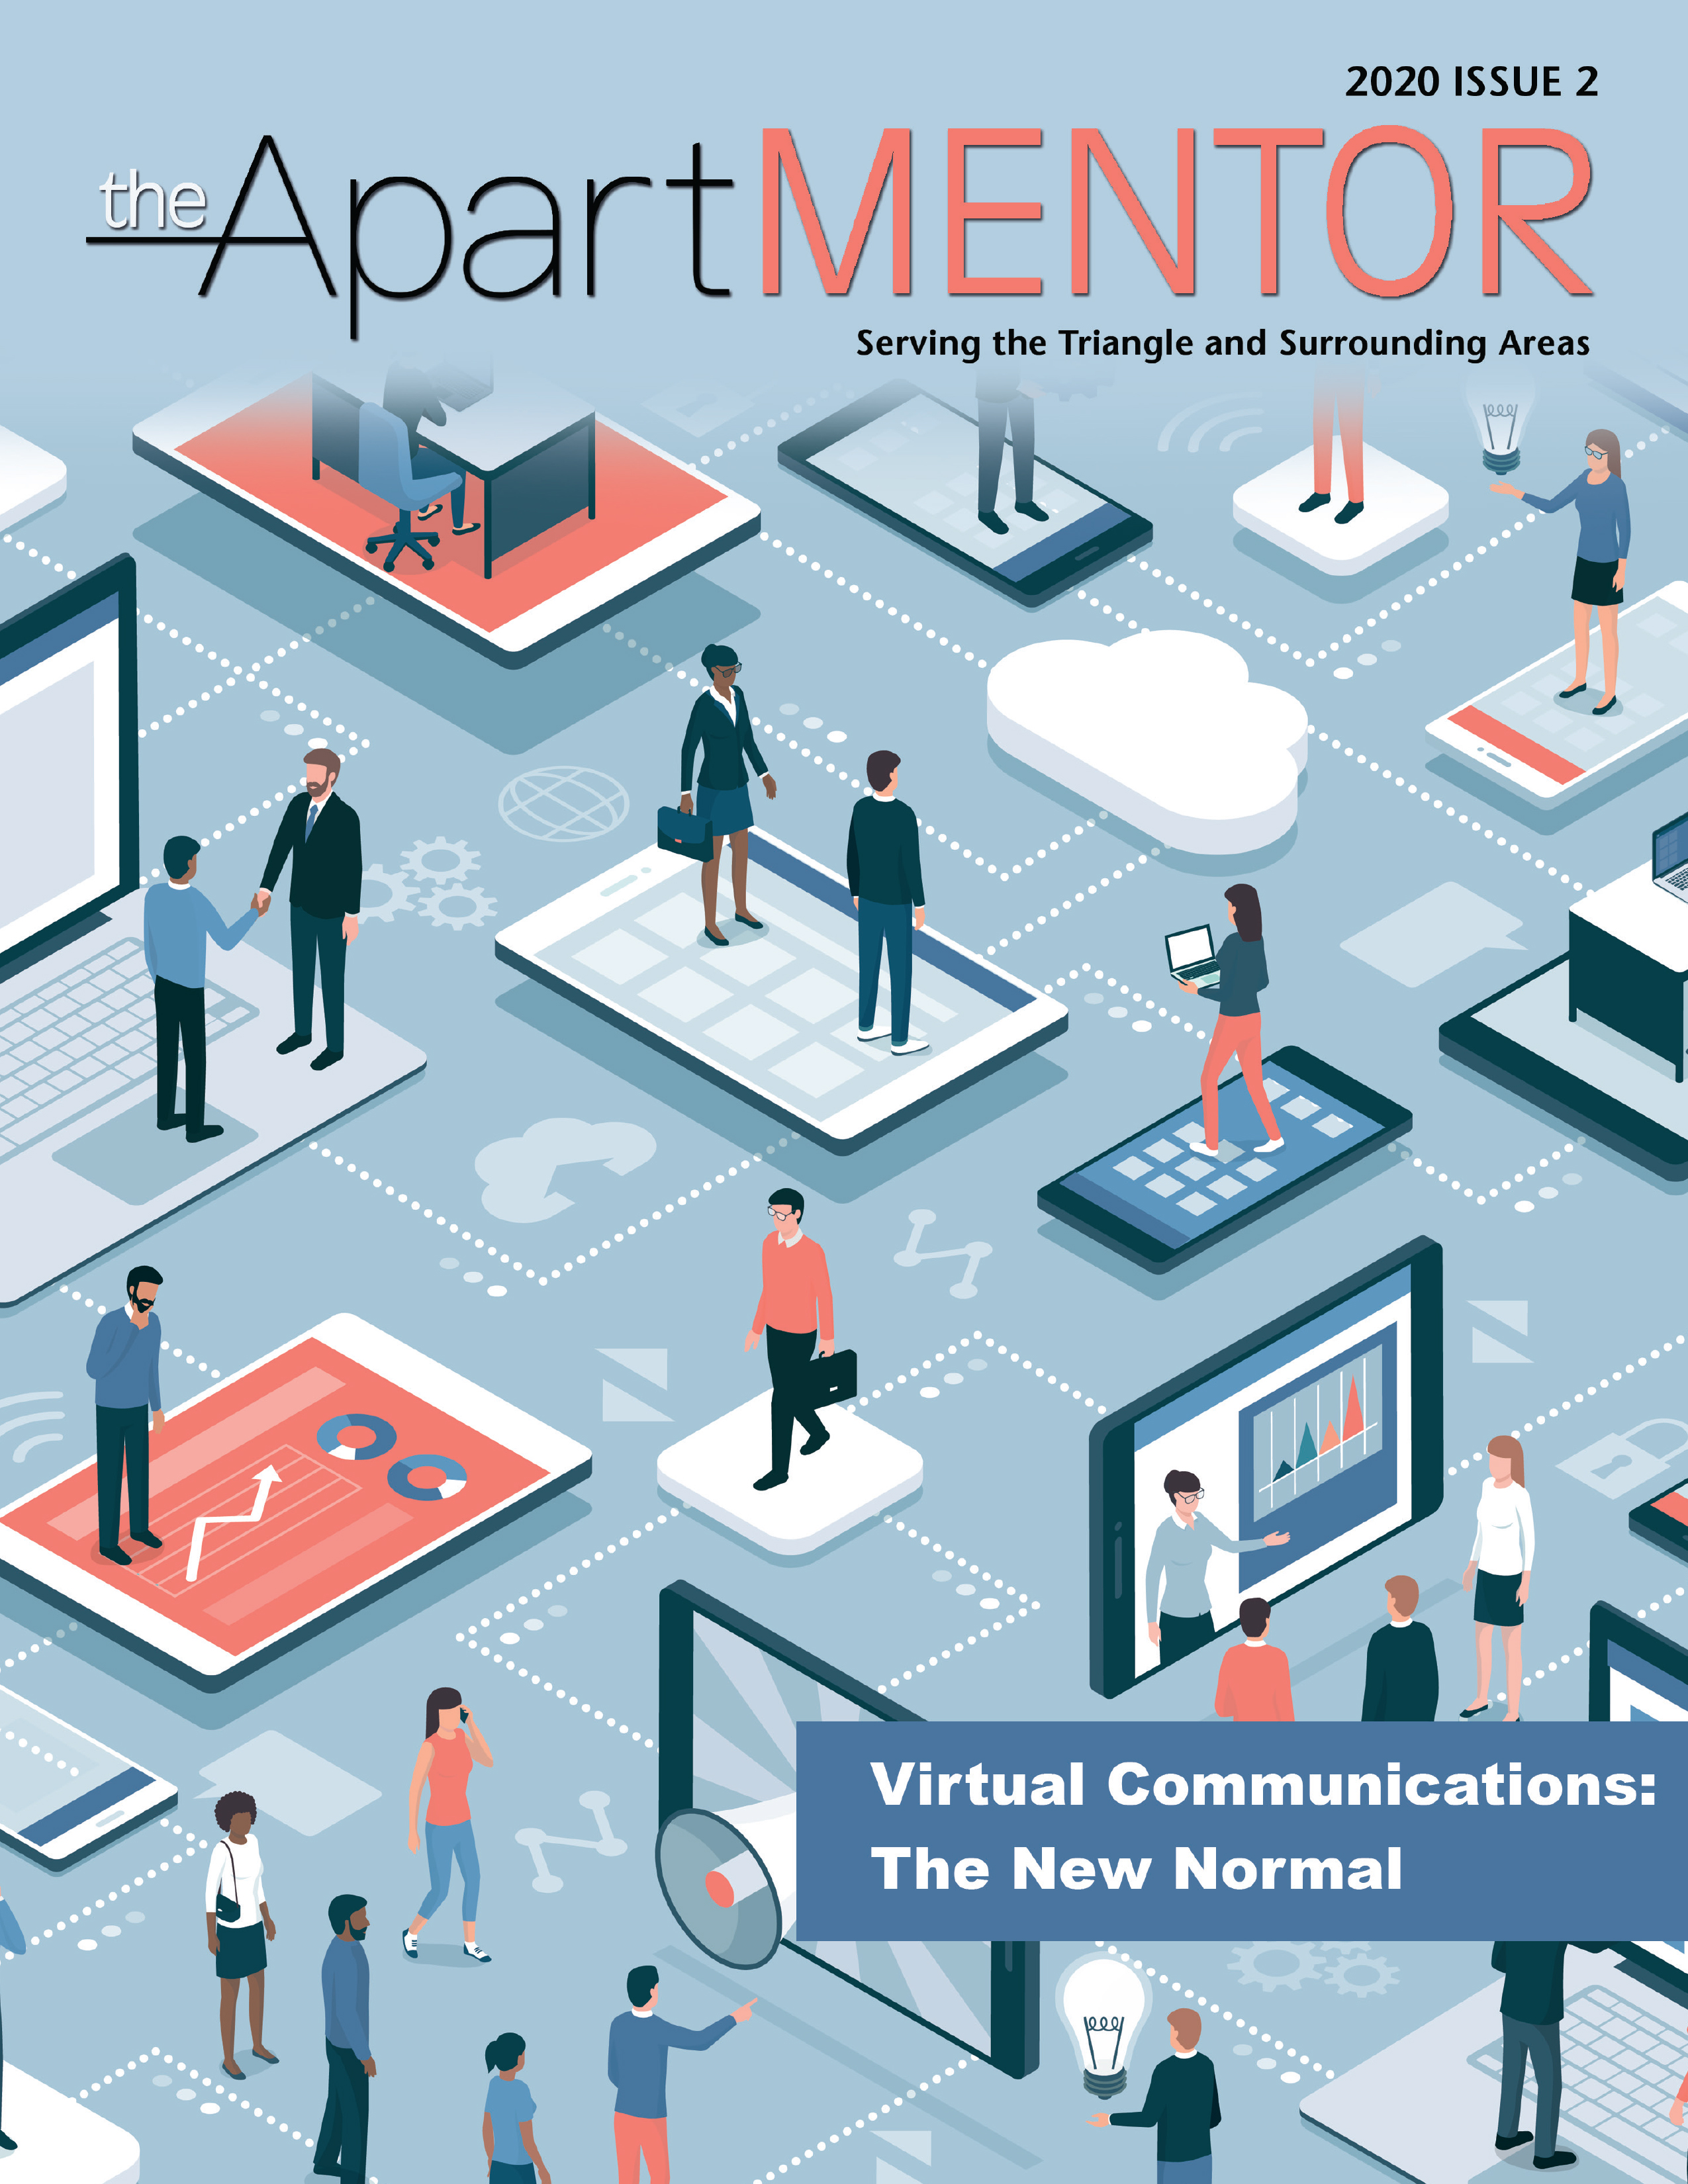 the apartmentor 2020 issue 2 cover